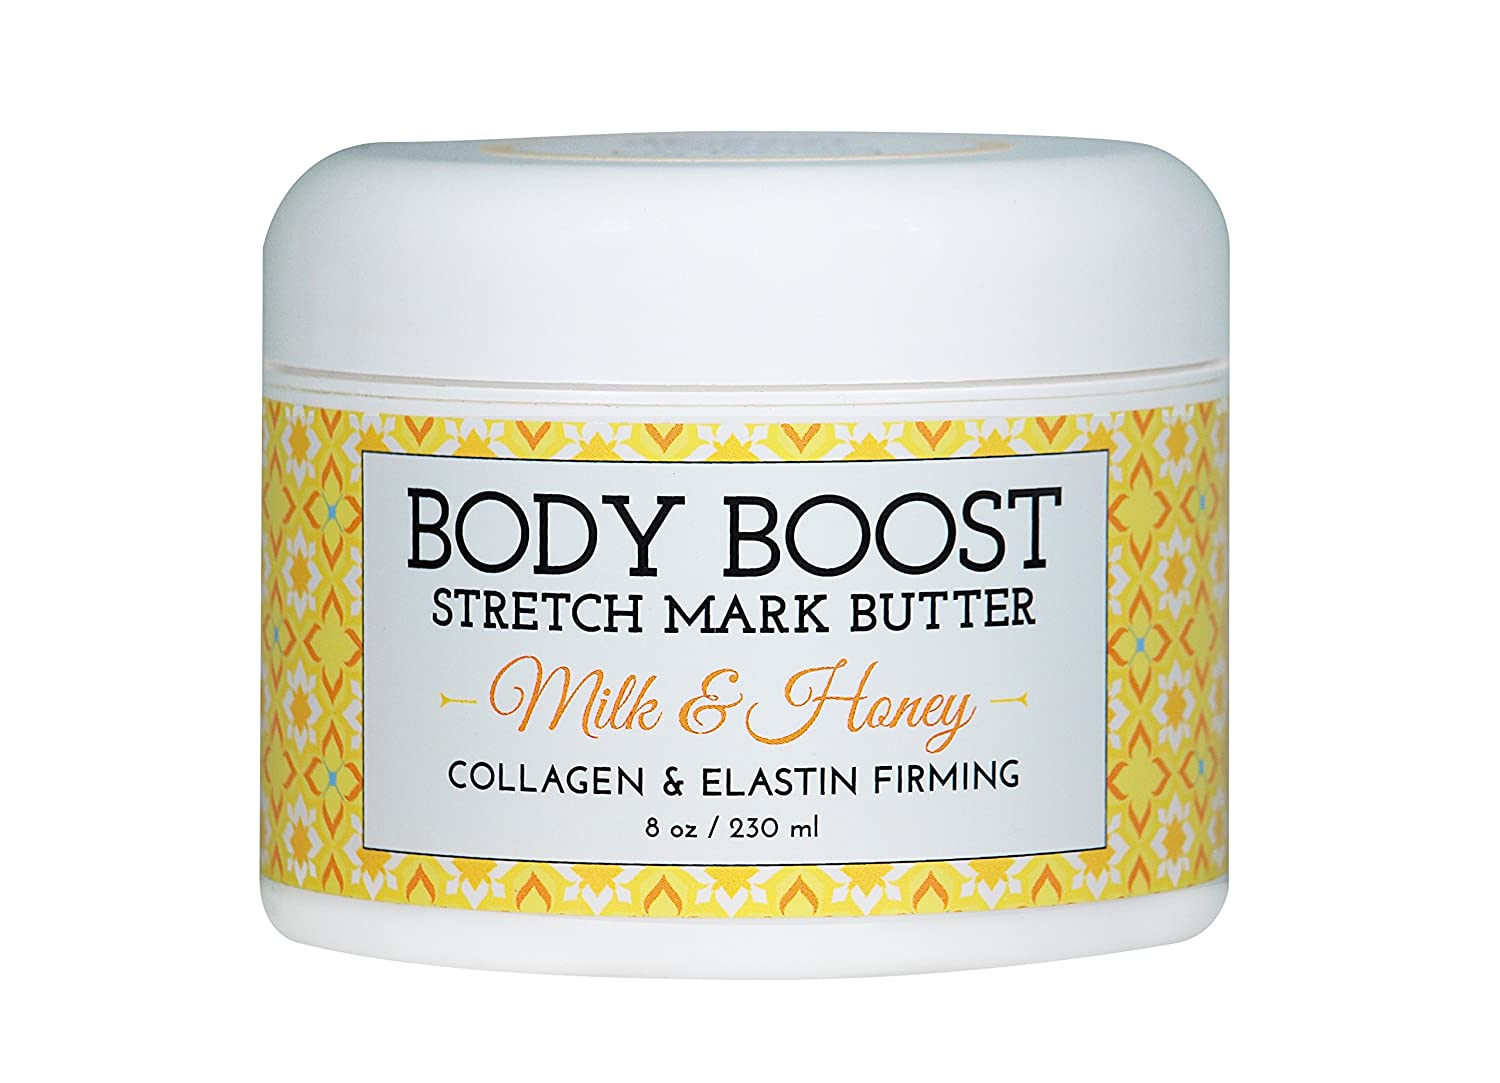 Body Boost Milk & Honey Stretch Mark Butter - Treat Stretch Marks and Scars - Pregnancy and Nursing Safe